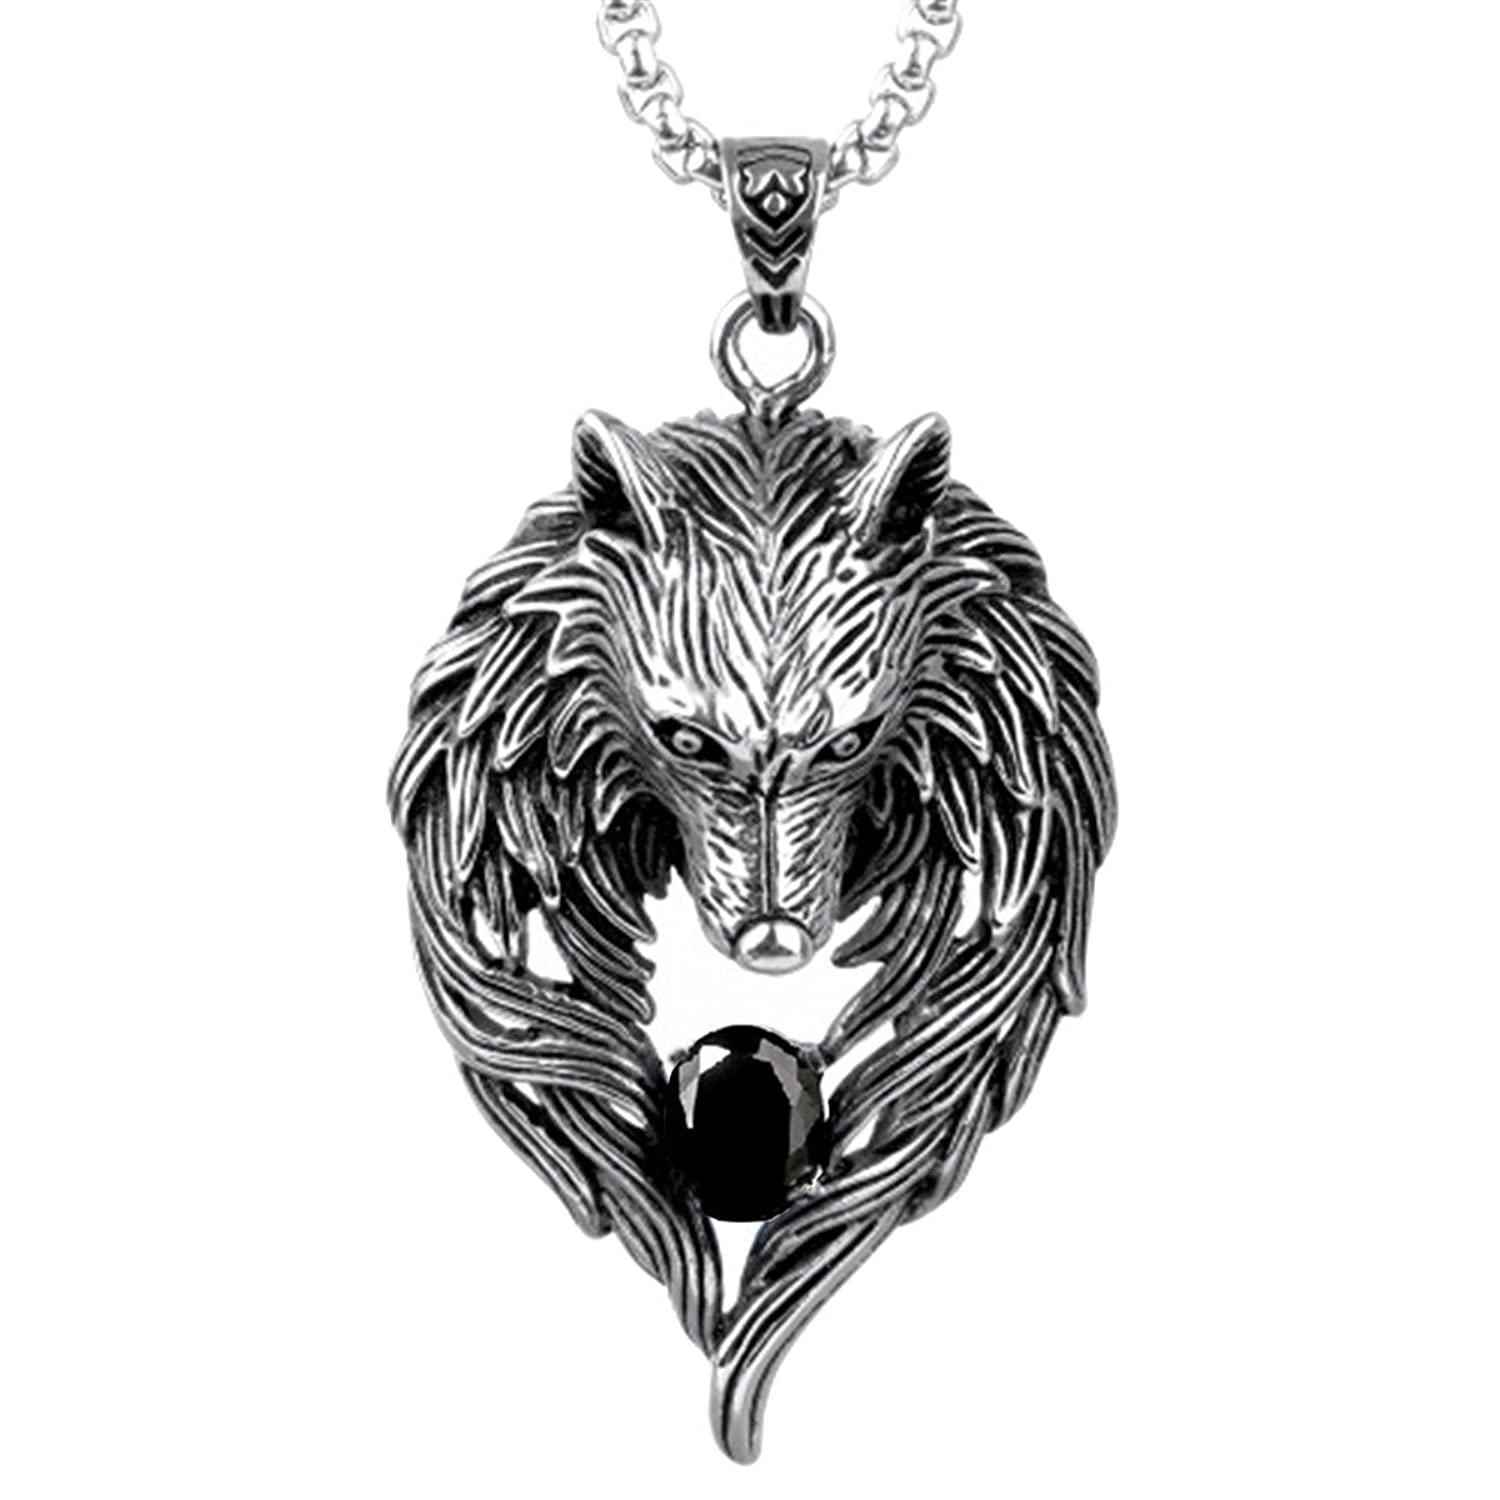 OCTCHOCO Men Necklace Wolf Pendant Personality Cool Wolf Necklace Titanium Steel Chain for Boyfriend Gift